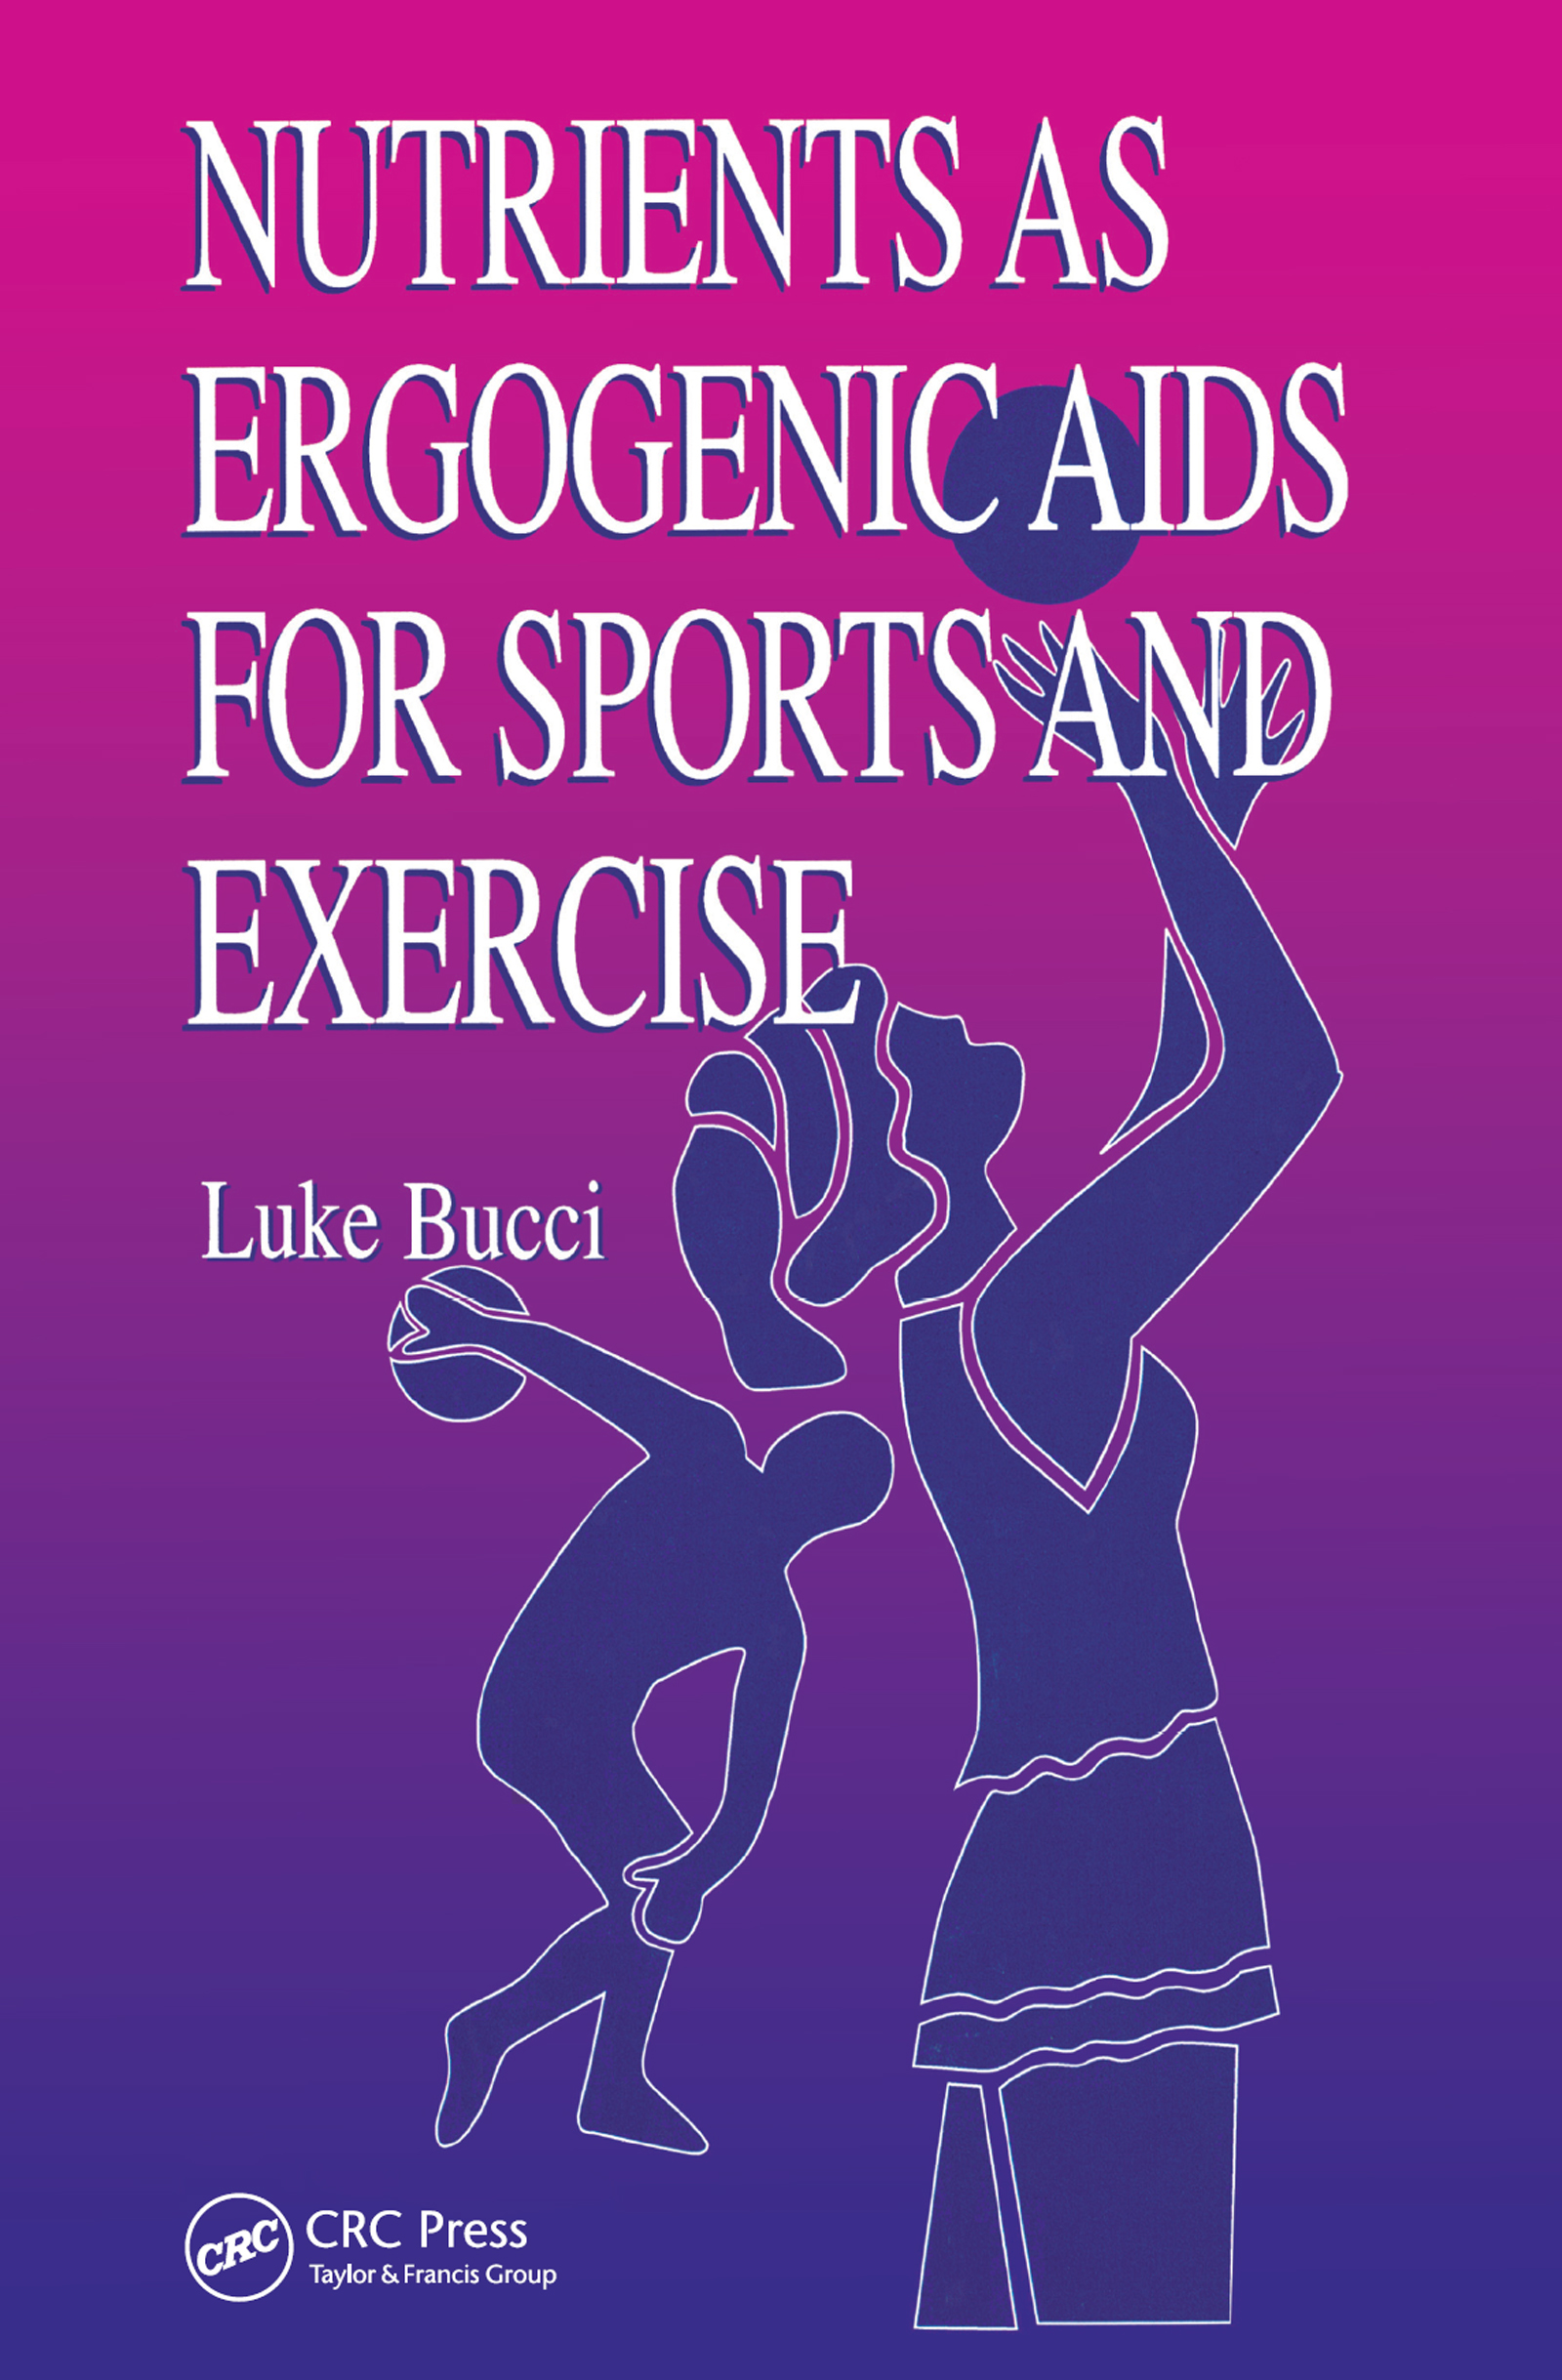 Summary and Guidelines for Use of Nutritional Ergogenic Aids